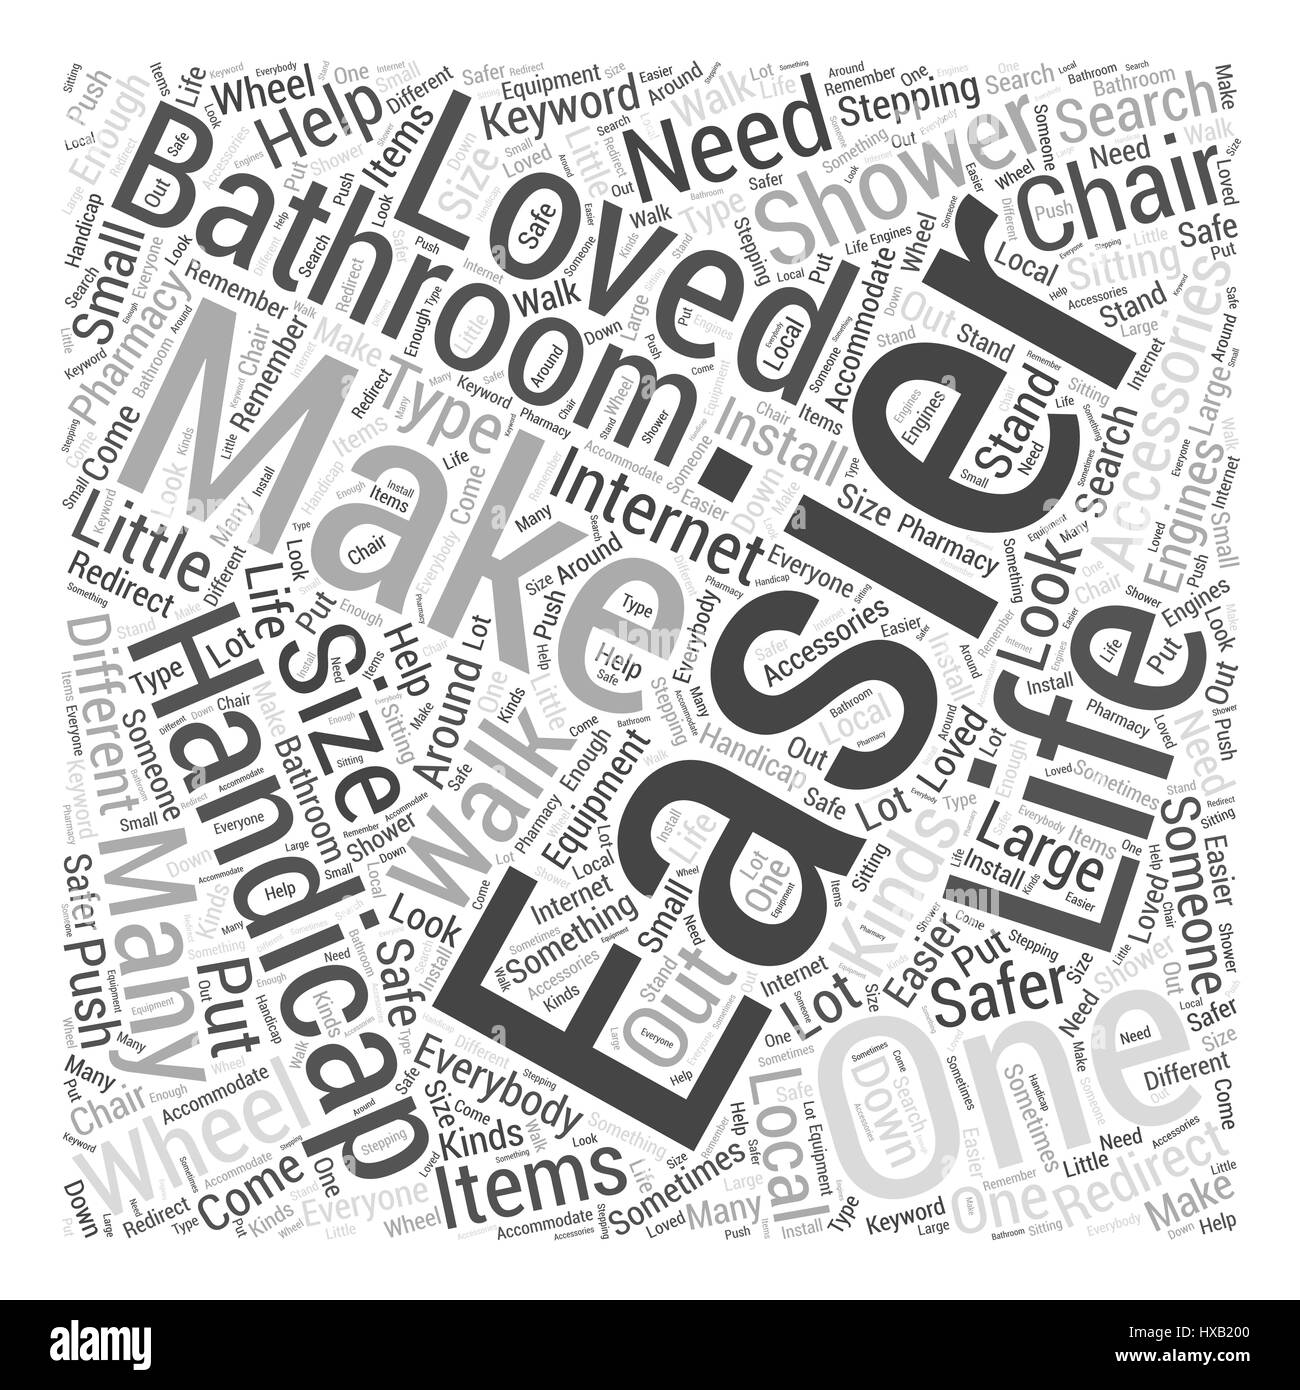 Handicapped accessories for the bathroom Word Cloud Concept Stock ...